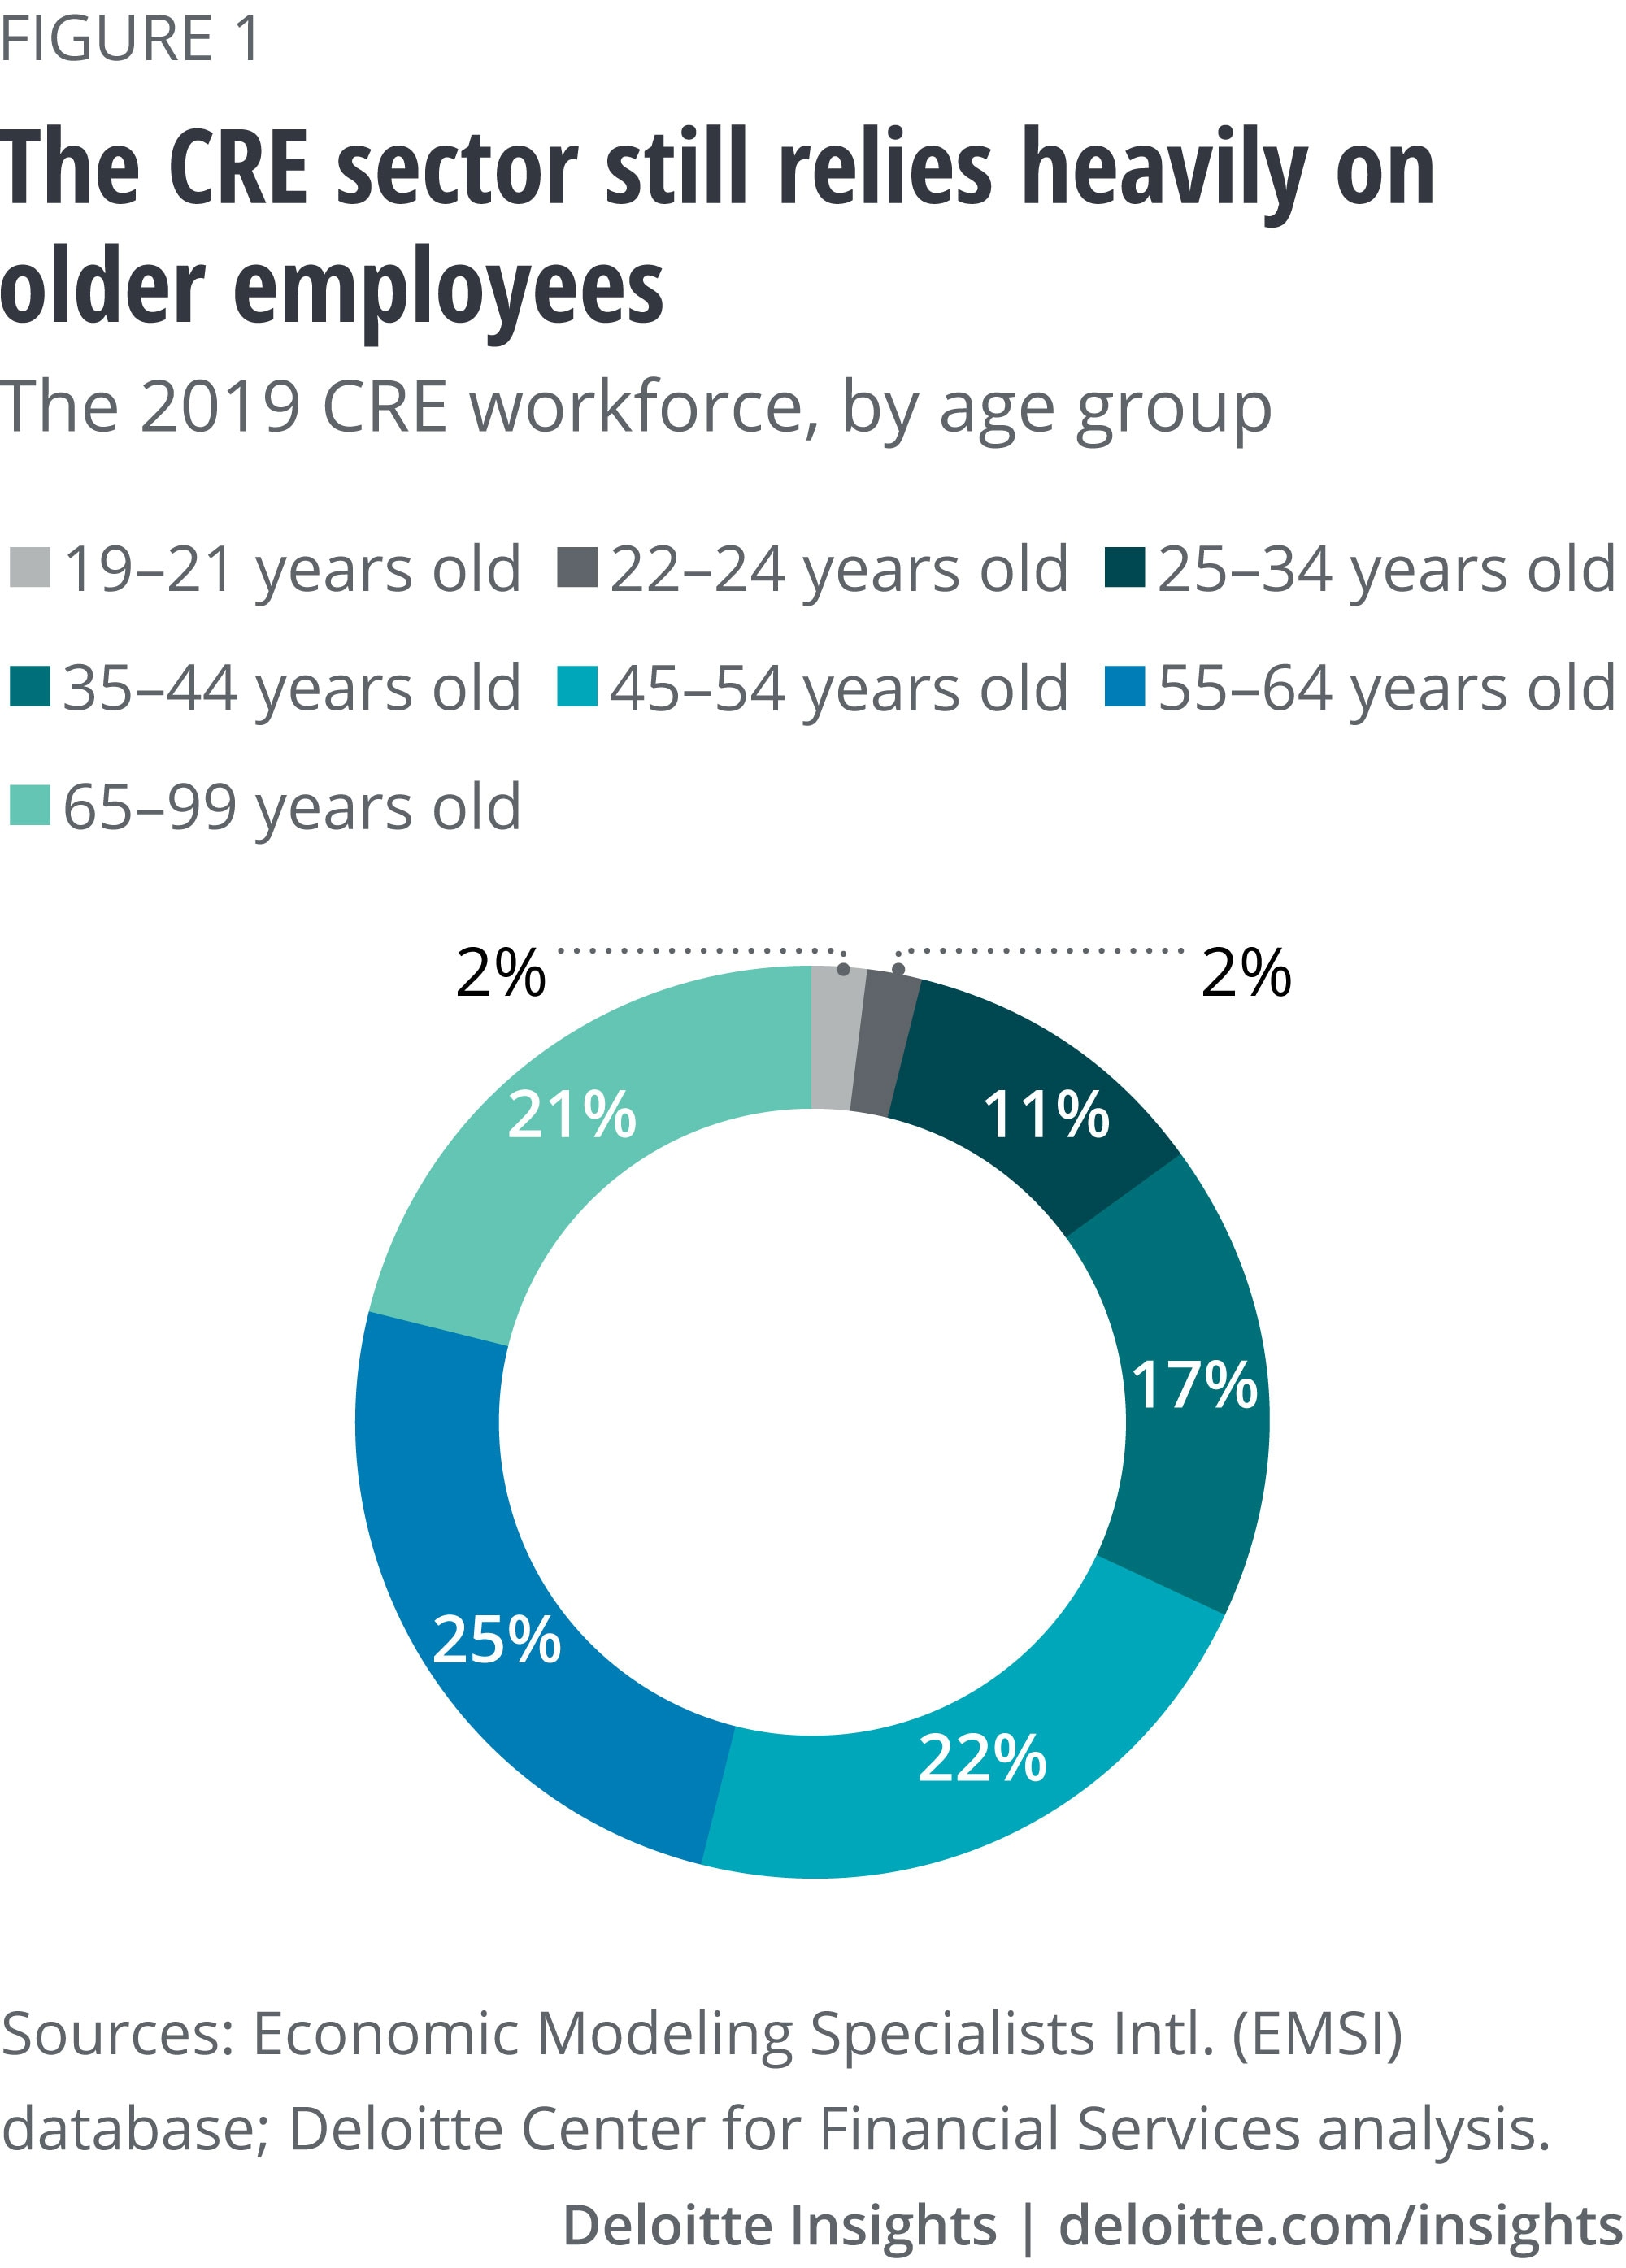 CRE workforce by age group (as of 2019)